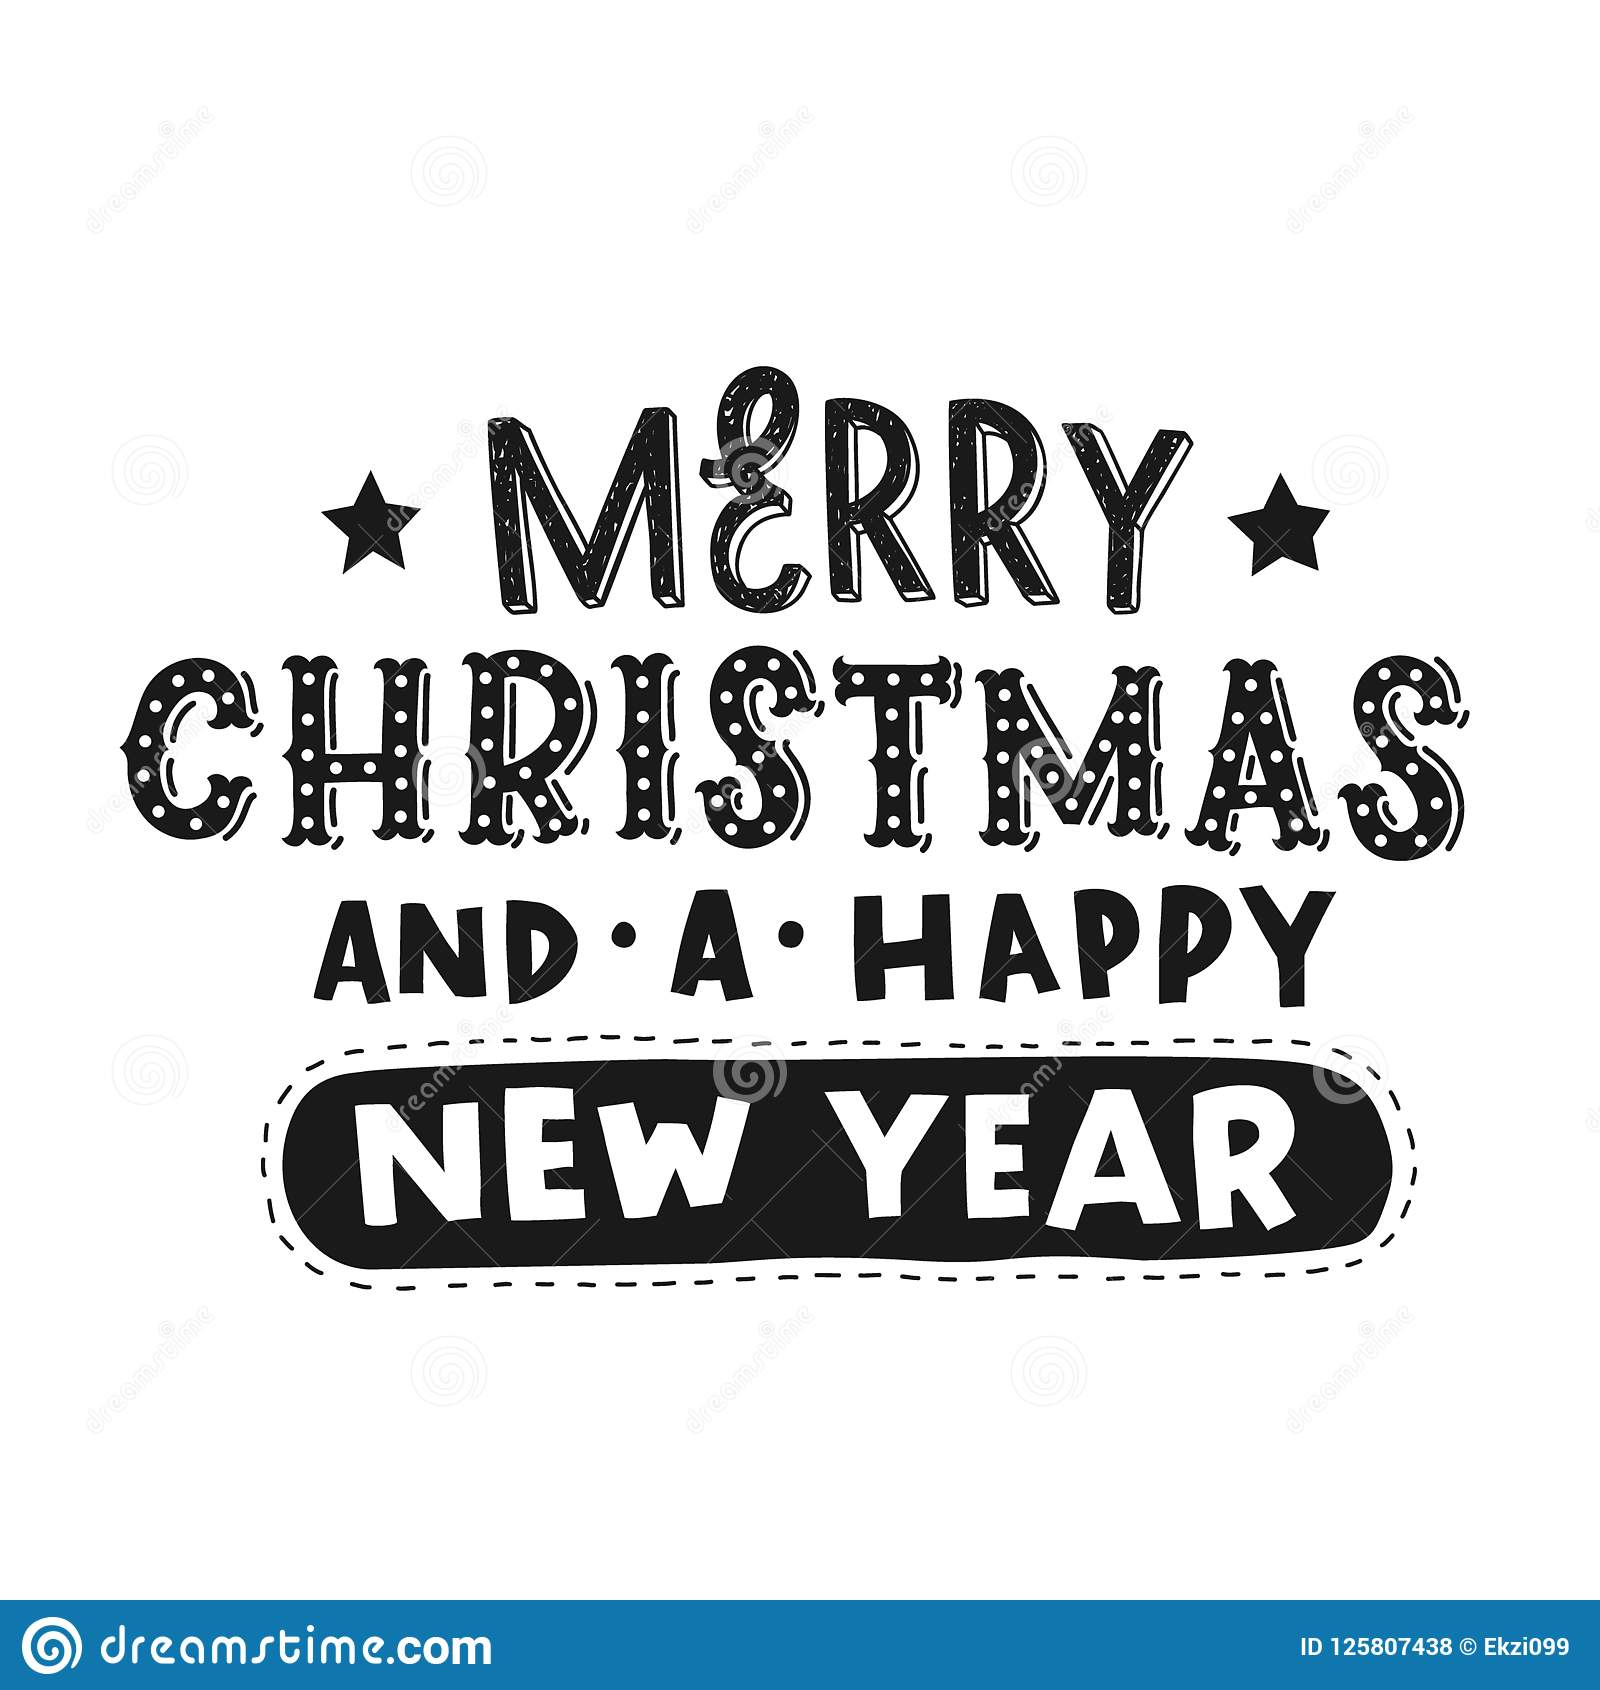 merry christmas and a happy new year vector black hand lettering stock vector illustration of card year 125807438 https www dreamstime com merry christmas happy new year vector black hand lettering isolated white background image125807438